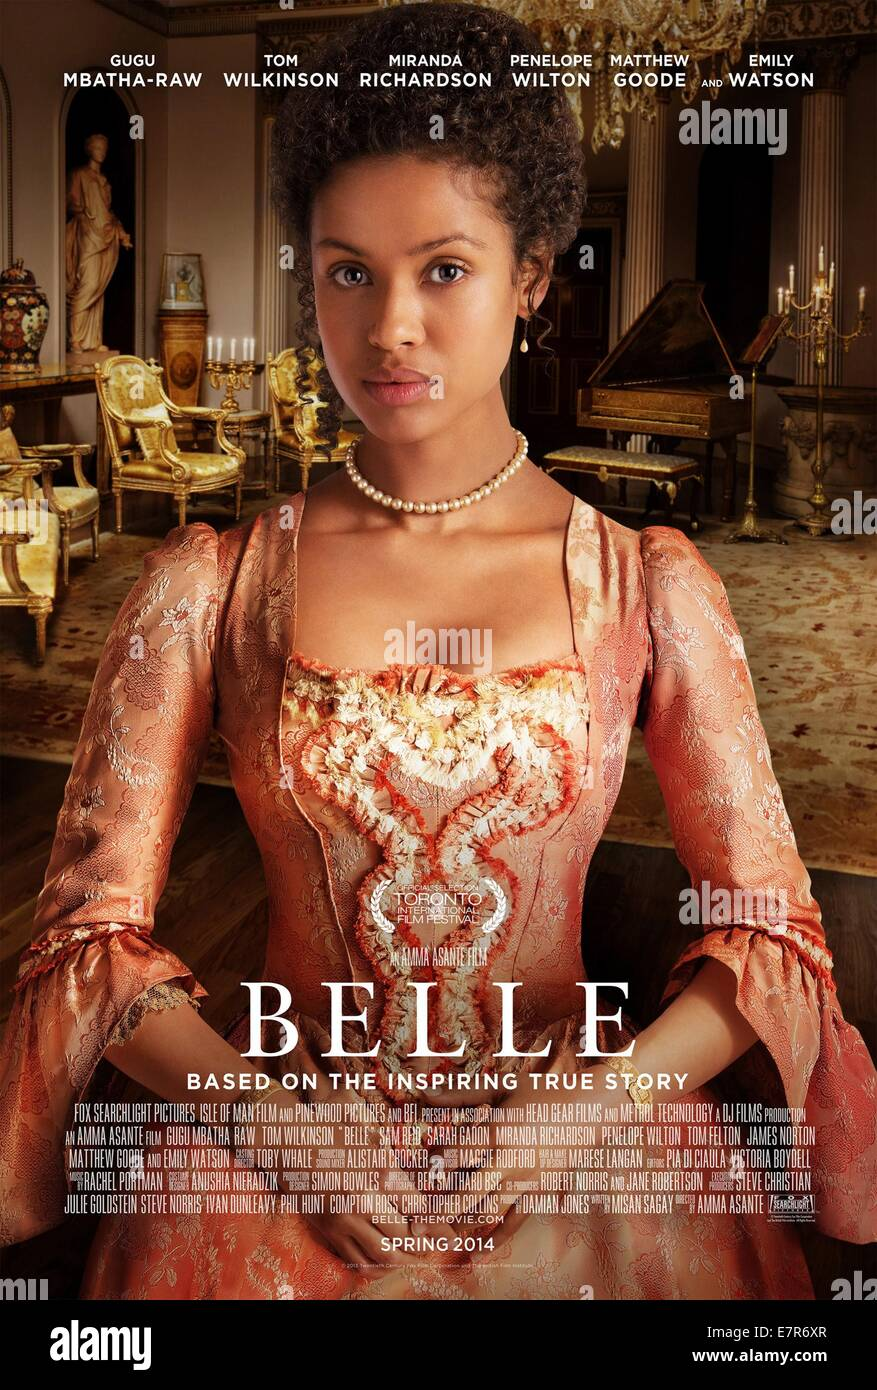 Belle Year : 2013 UK Director : Amma Asante Gugu Mbatha-Raw Movie poster (UK) - Stock Image